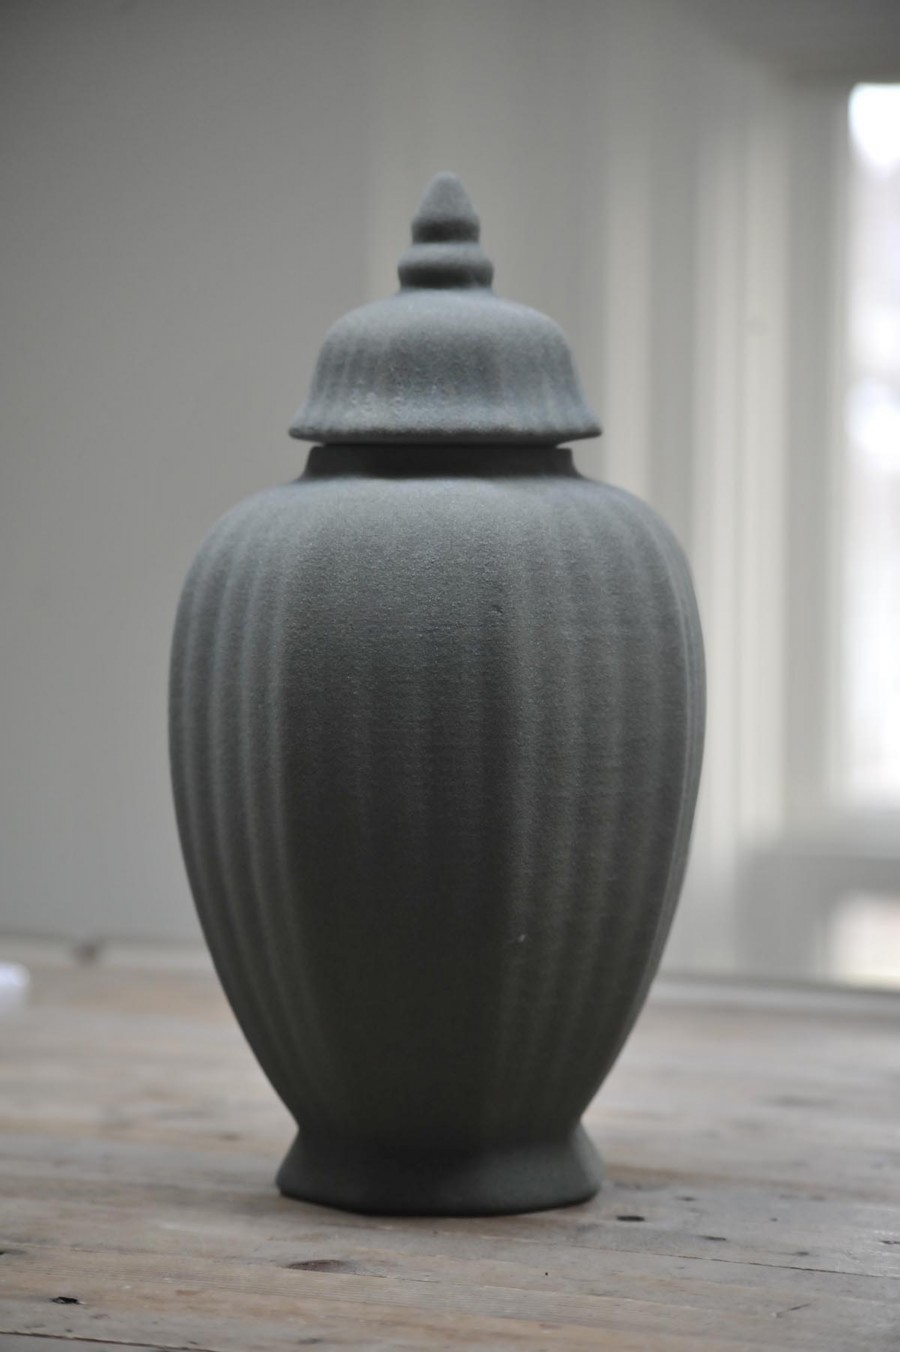 Presented by Judy Straten Art Design, Rolf Bruggink, sand 3D printed vase 1